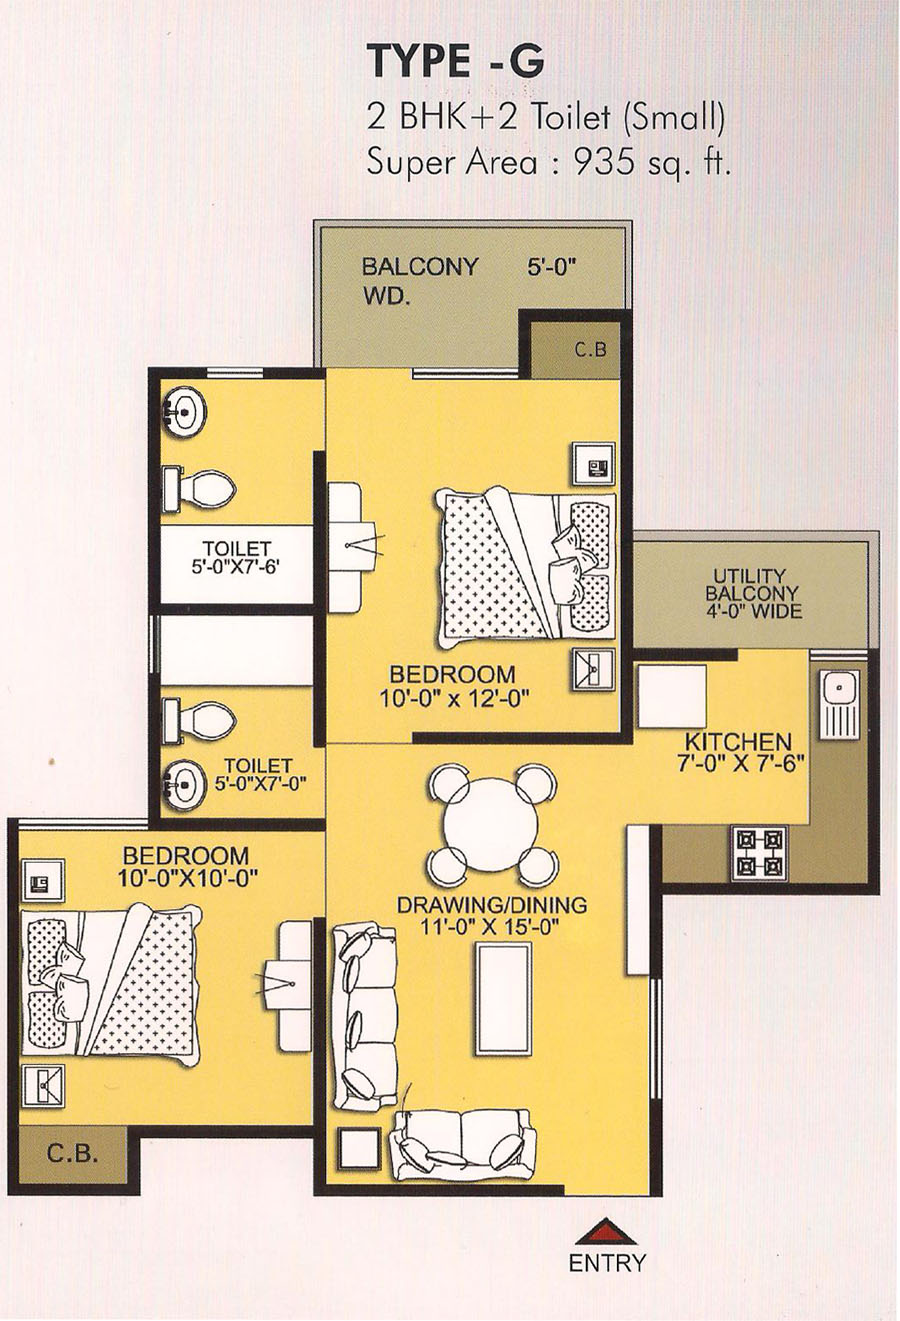 2 BHK Ready to Move in Flats in Ghaziabad